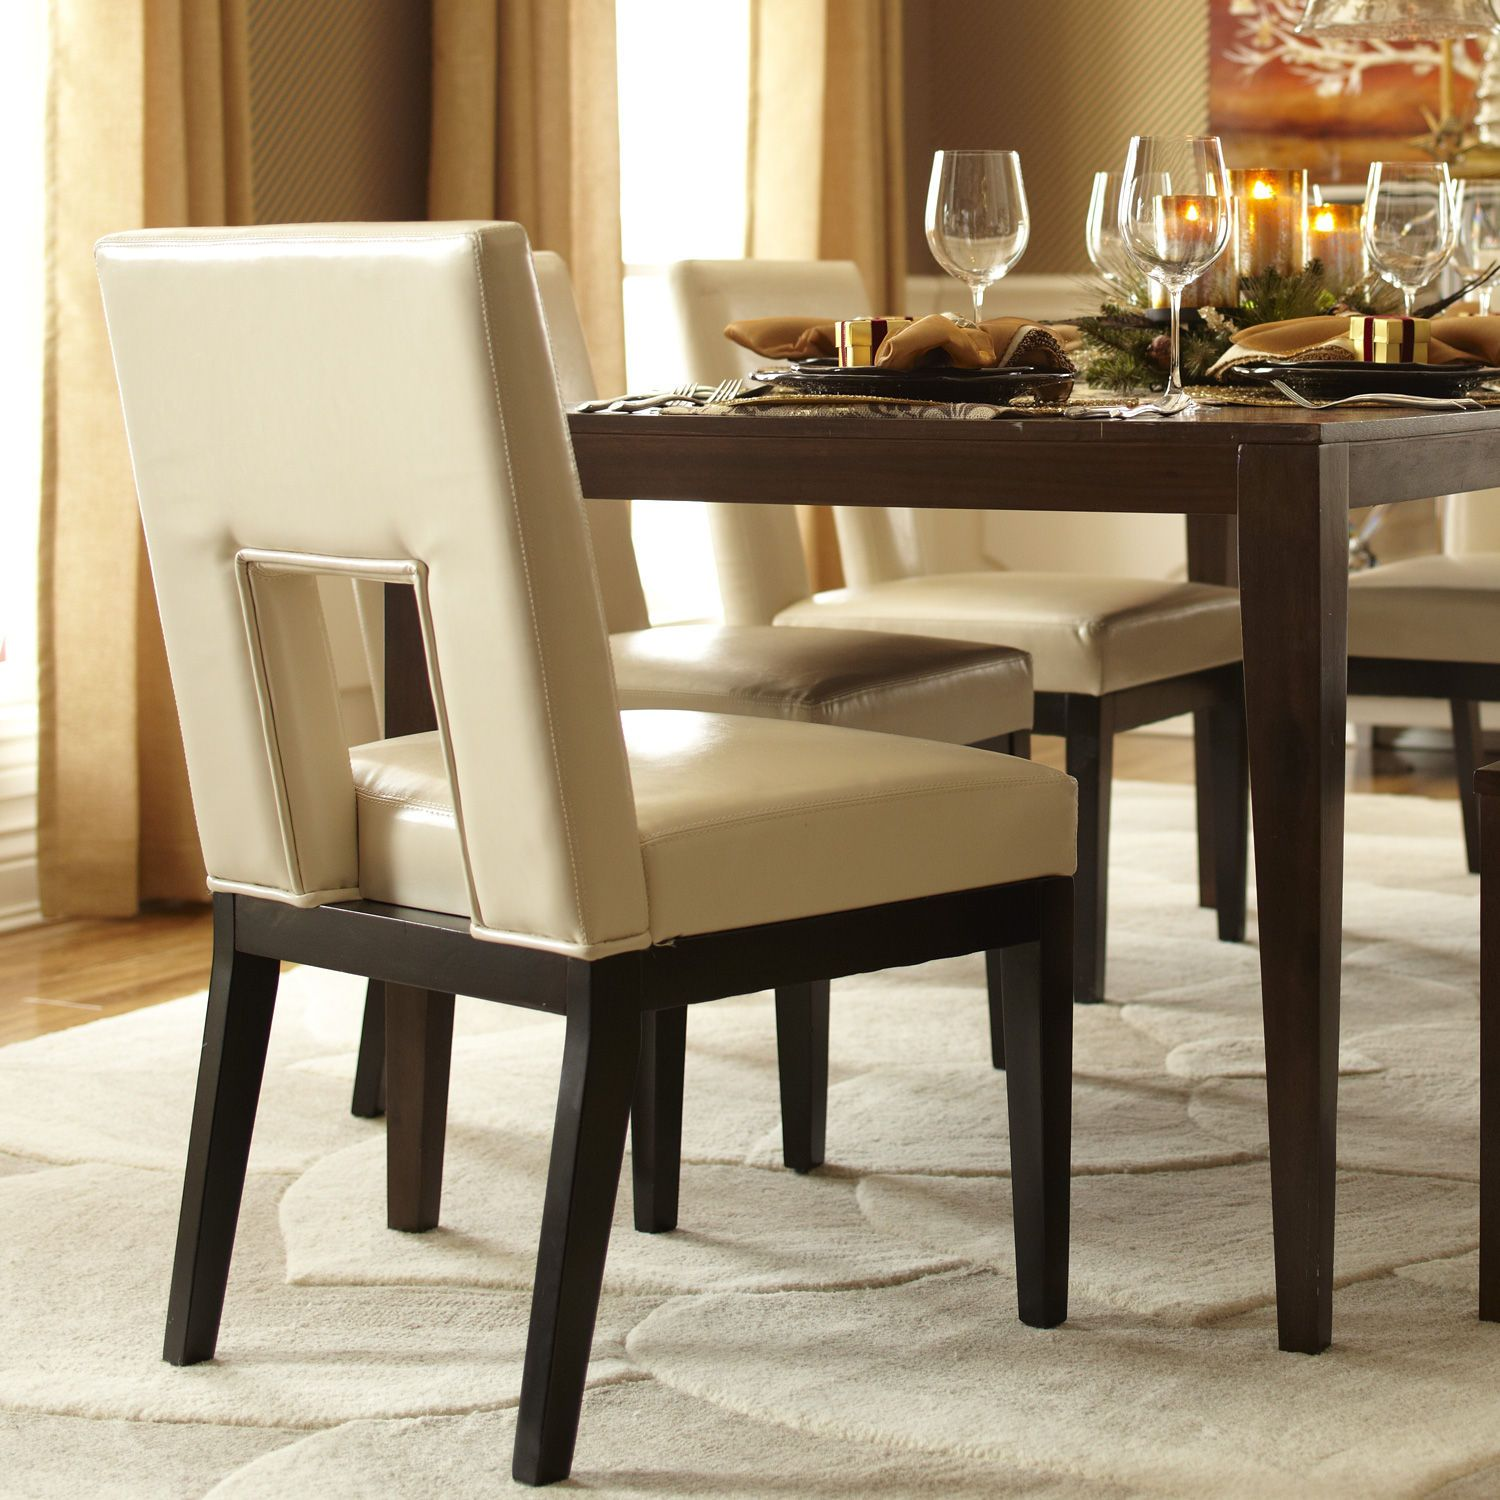 Bon Pier 1   Bal Harbor Dining Chair   This Is The Champagne But Using This  Photo To Look At The Quality